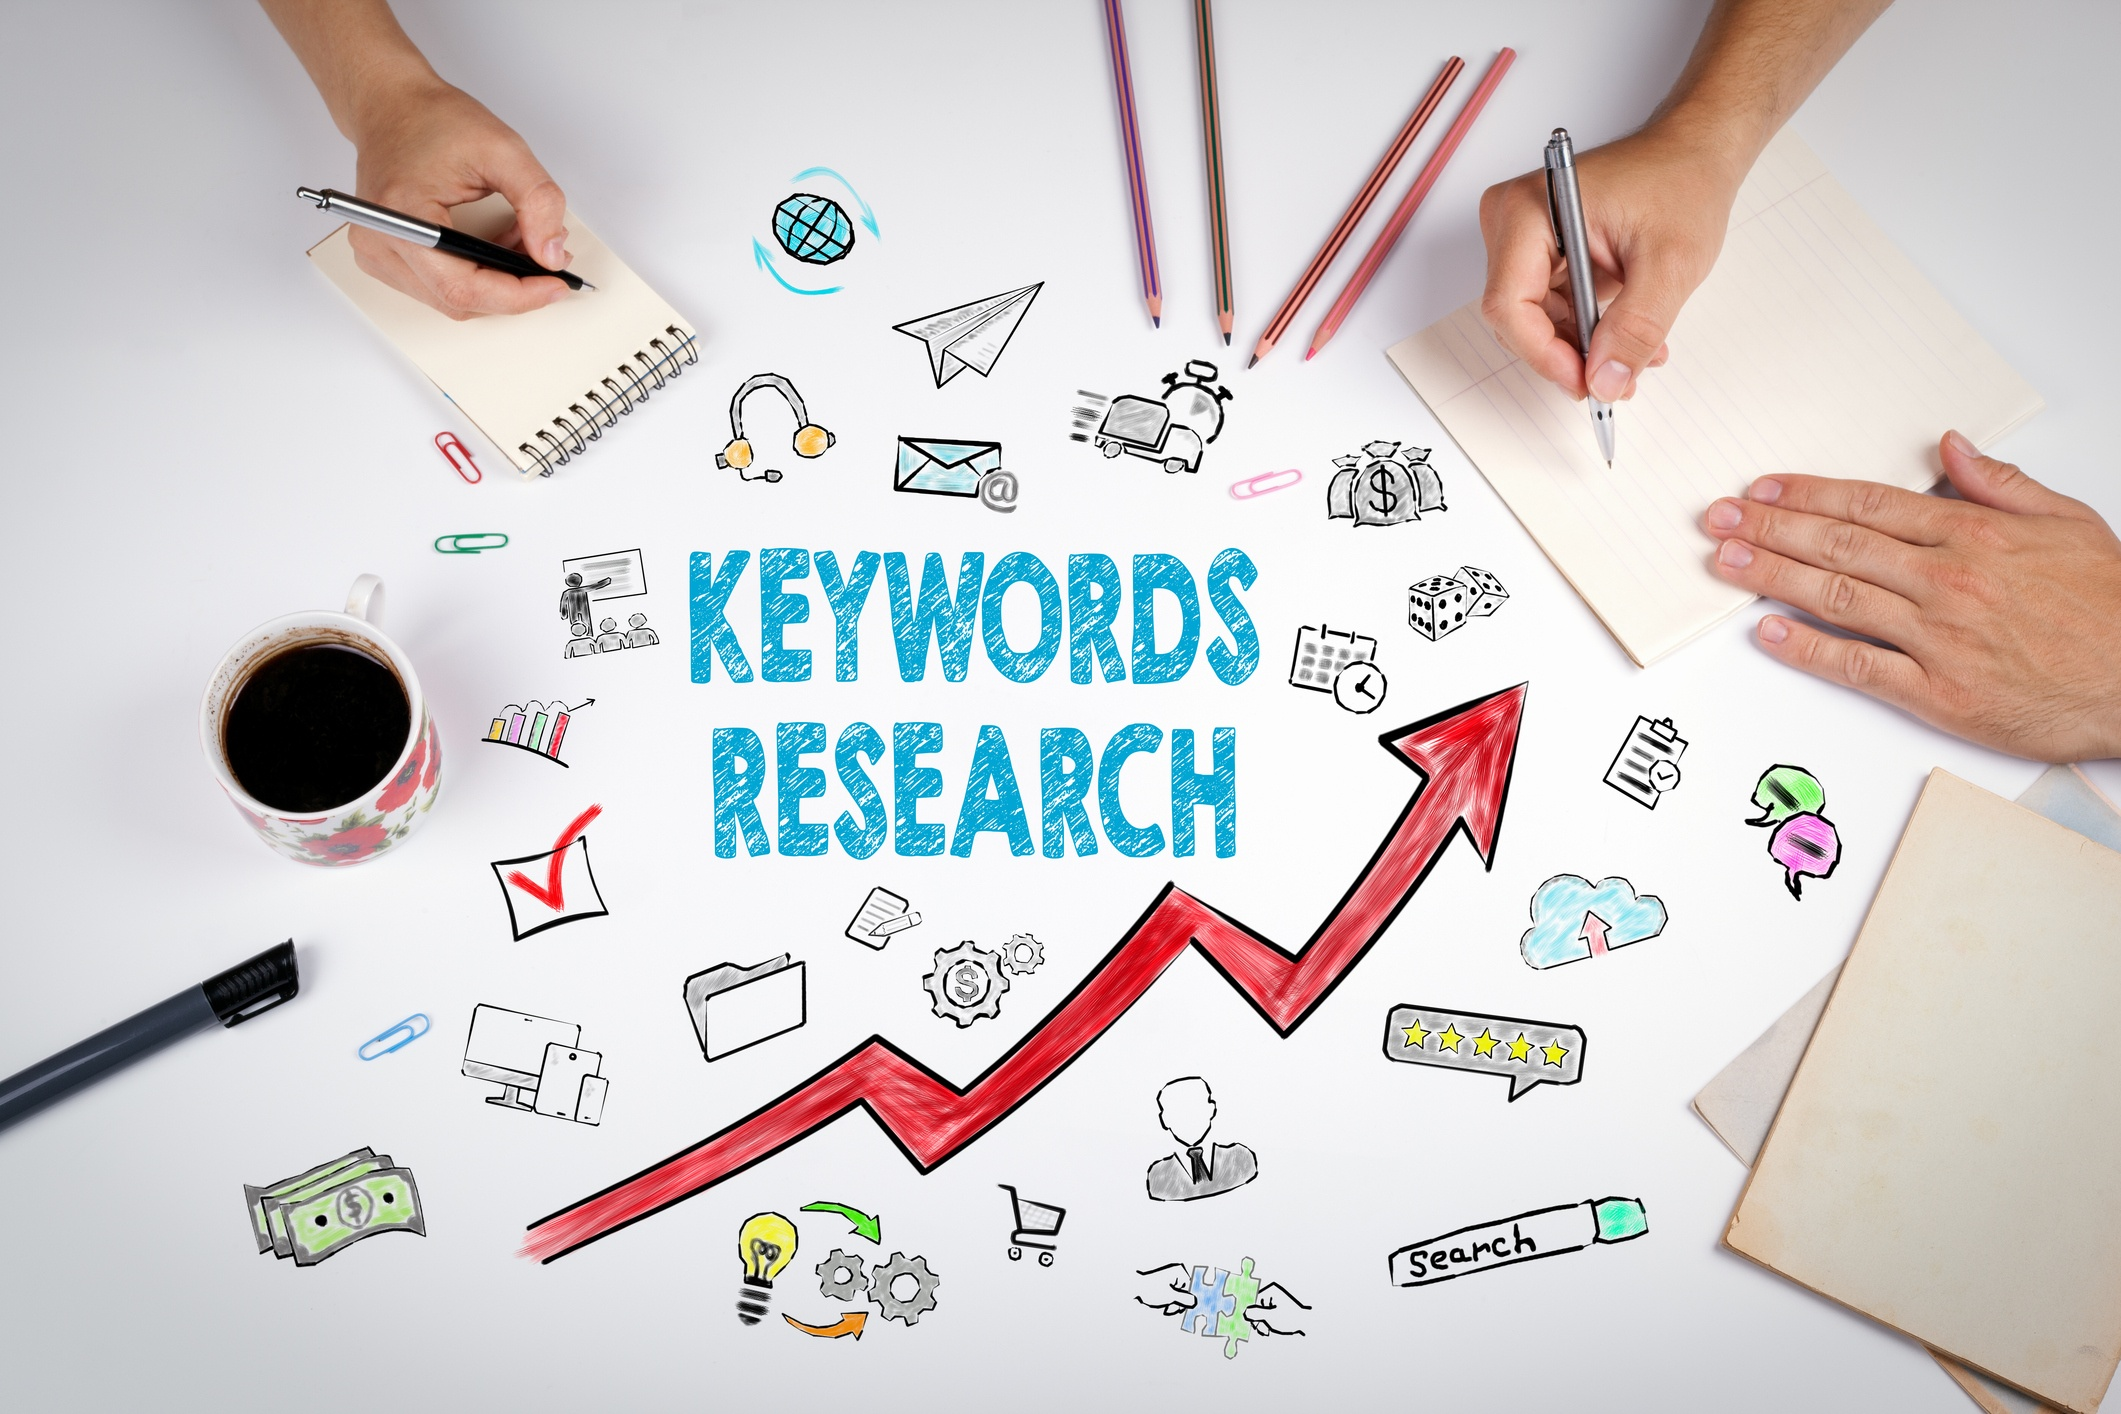 Keyword-research-tools-can-help-with-blog-ideas.jpg